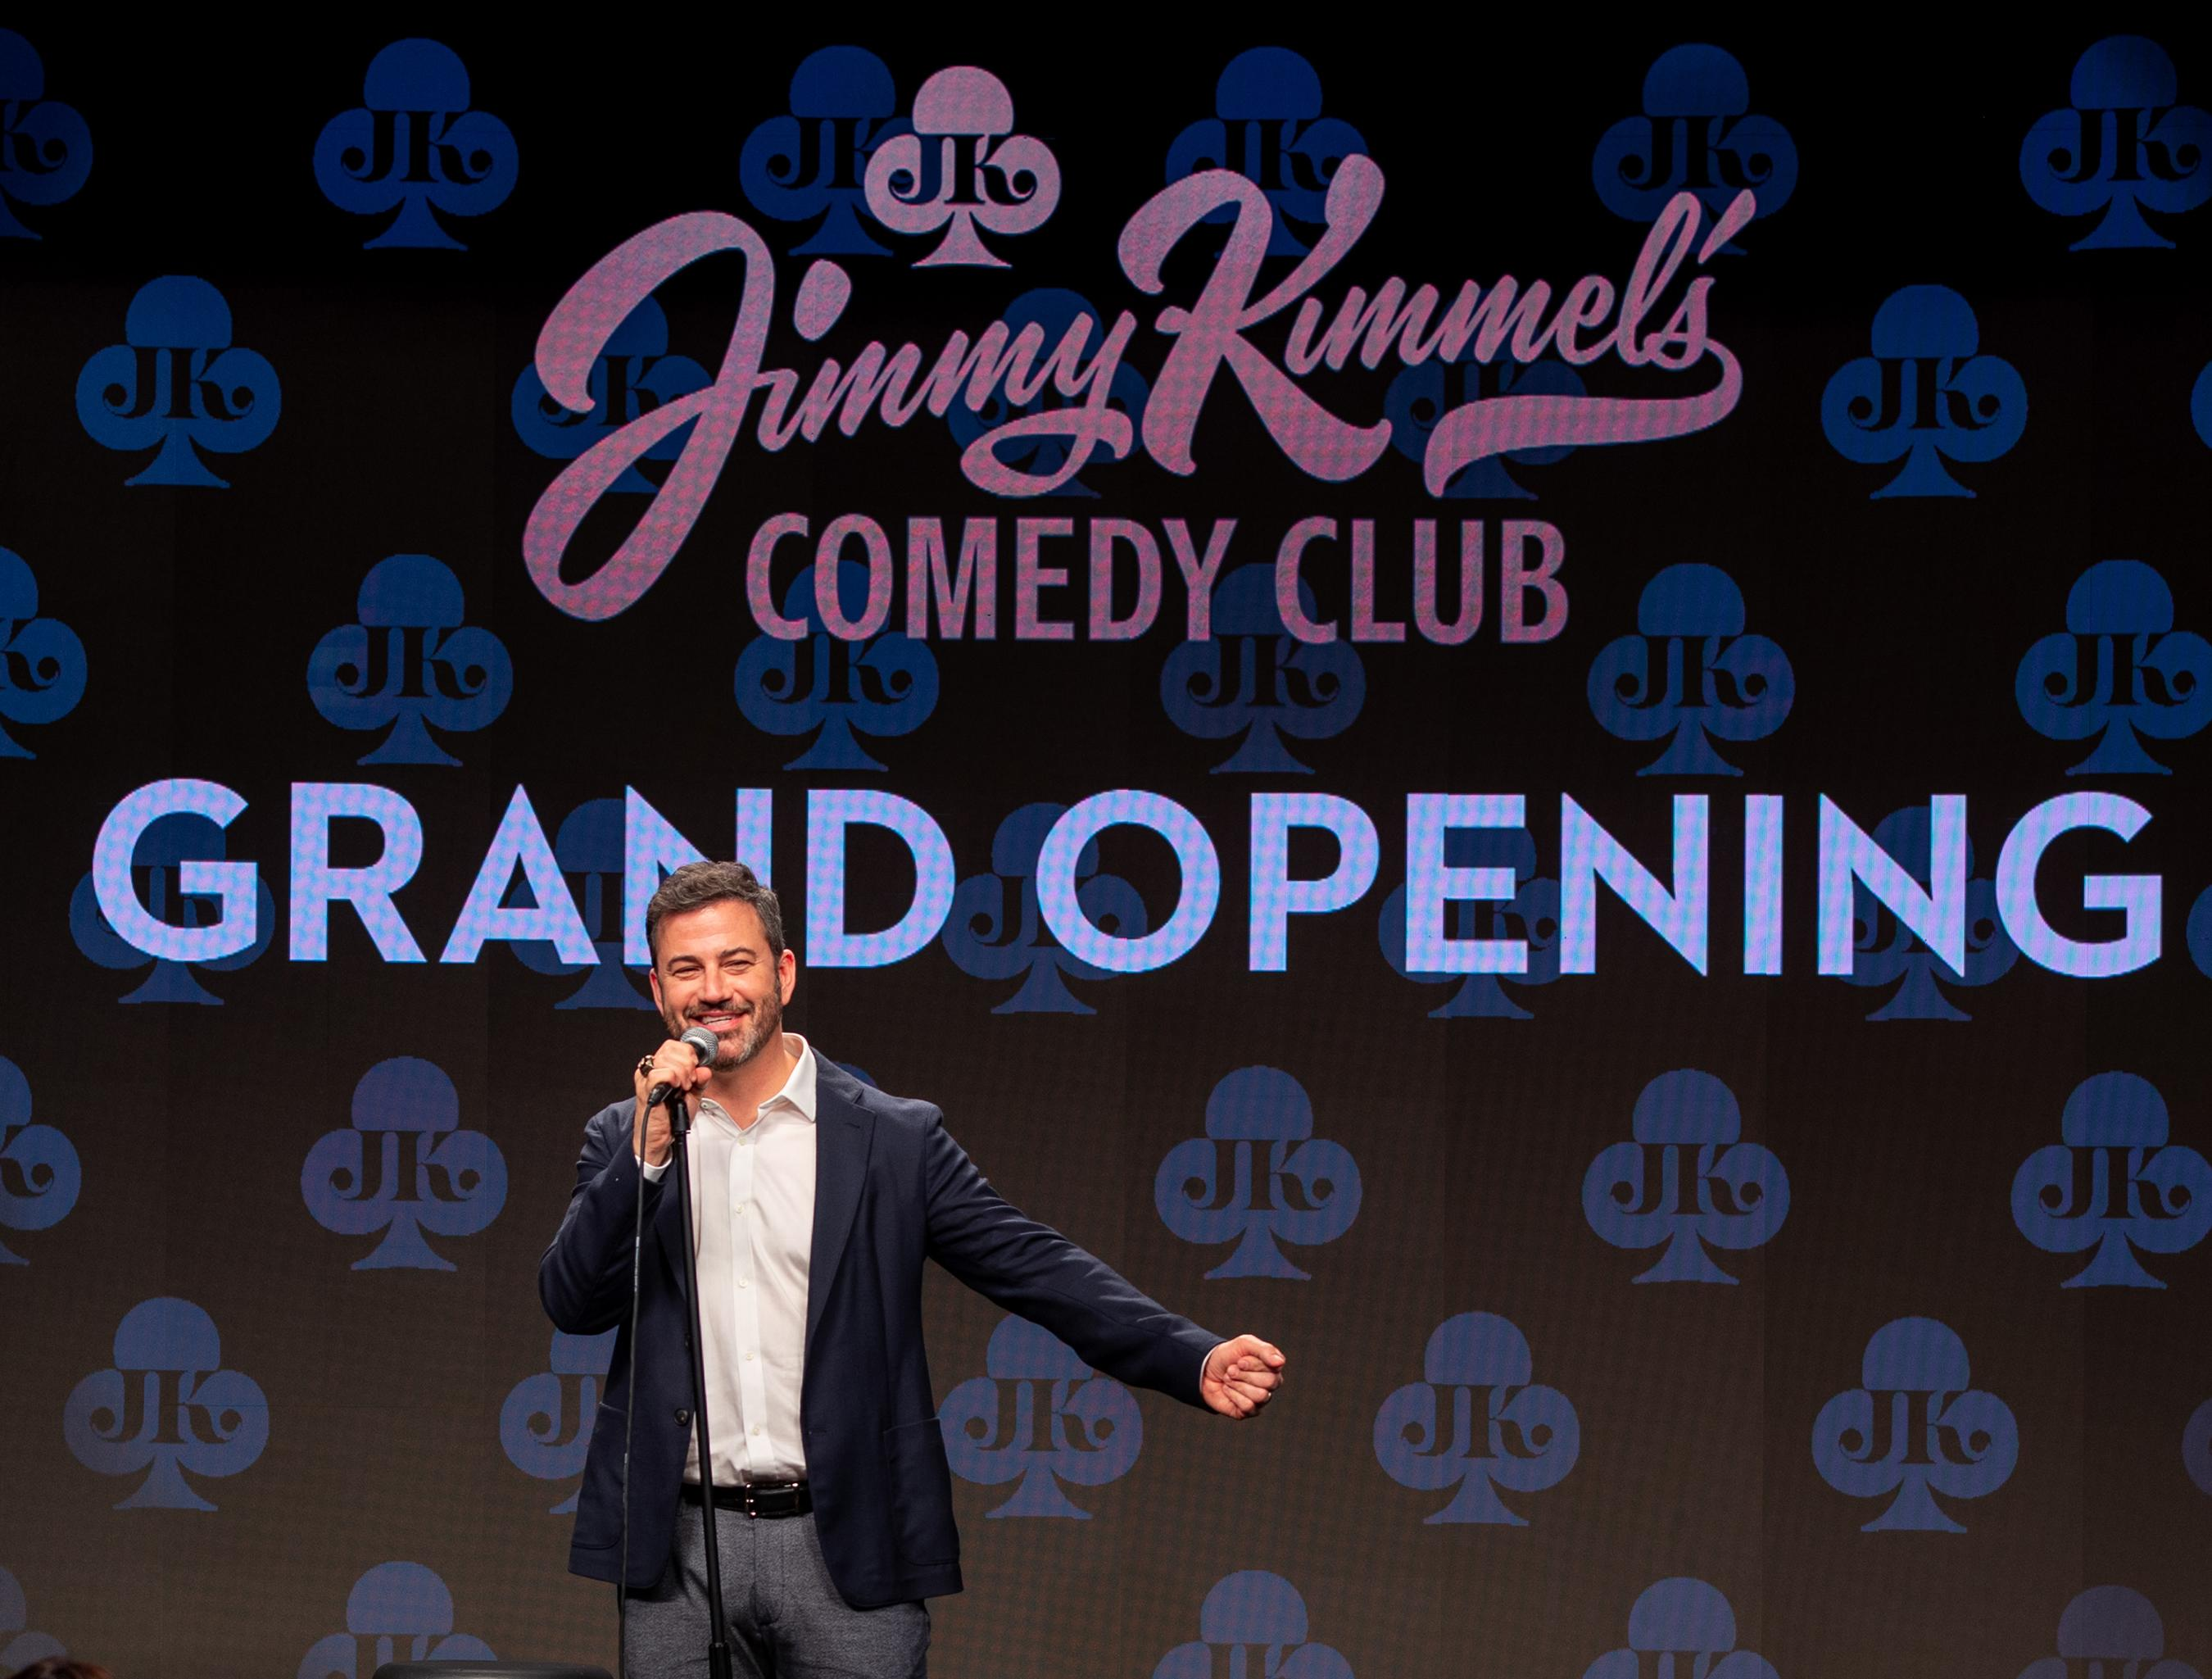 Jimmy Kimmel's Comedy Club Officially Launches at The LINQ Promenade with Appearances from Celebrity Guests and Friends